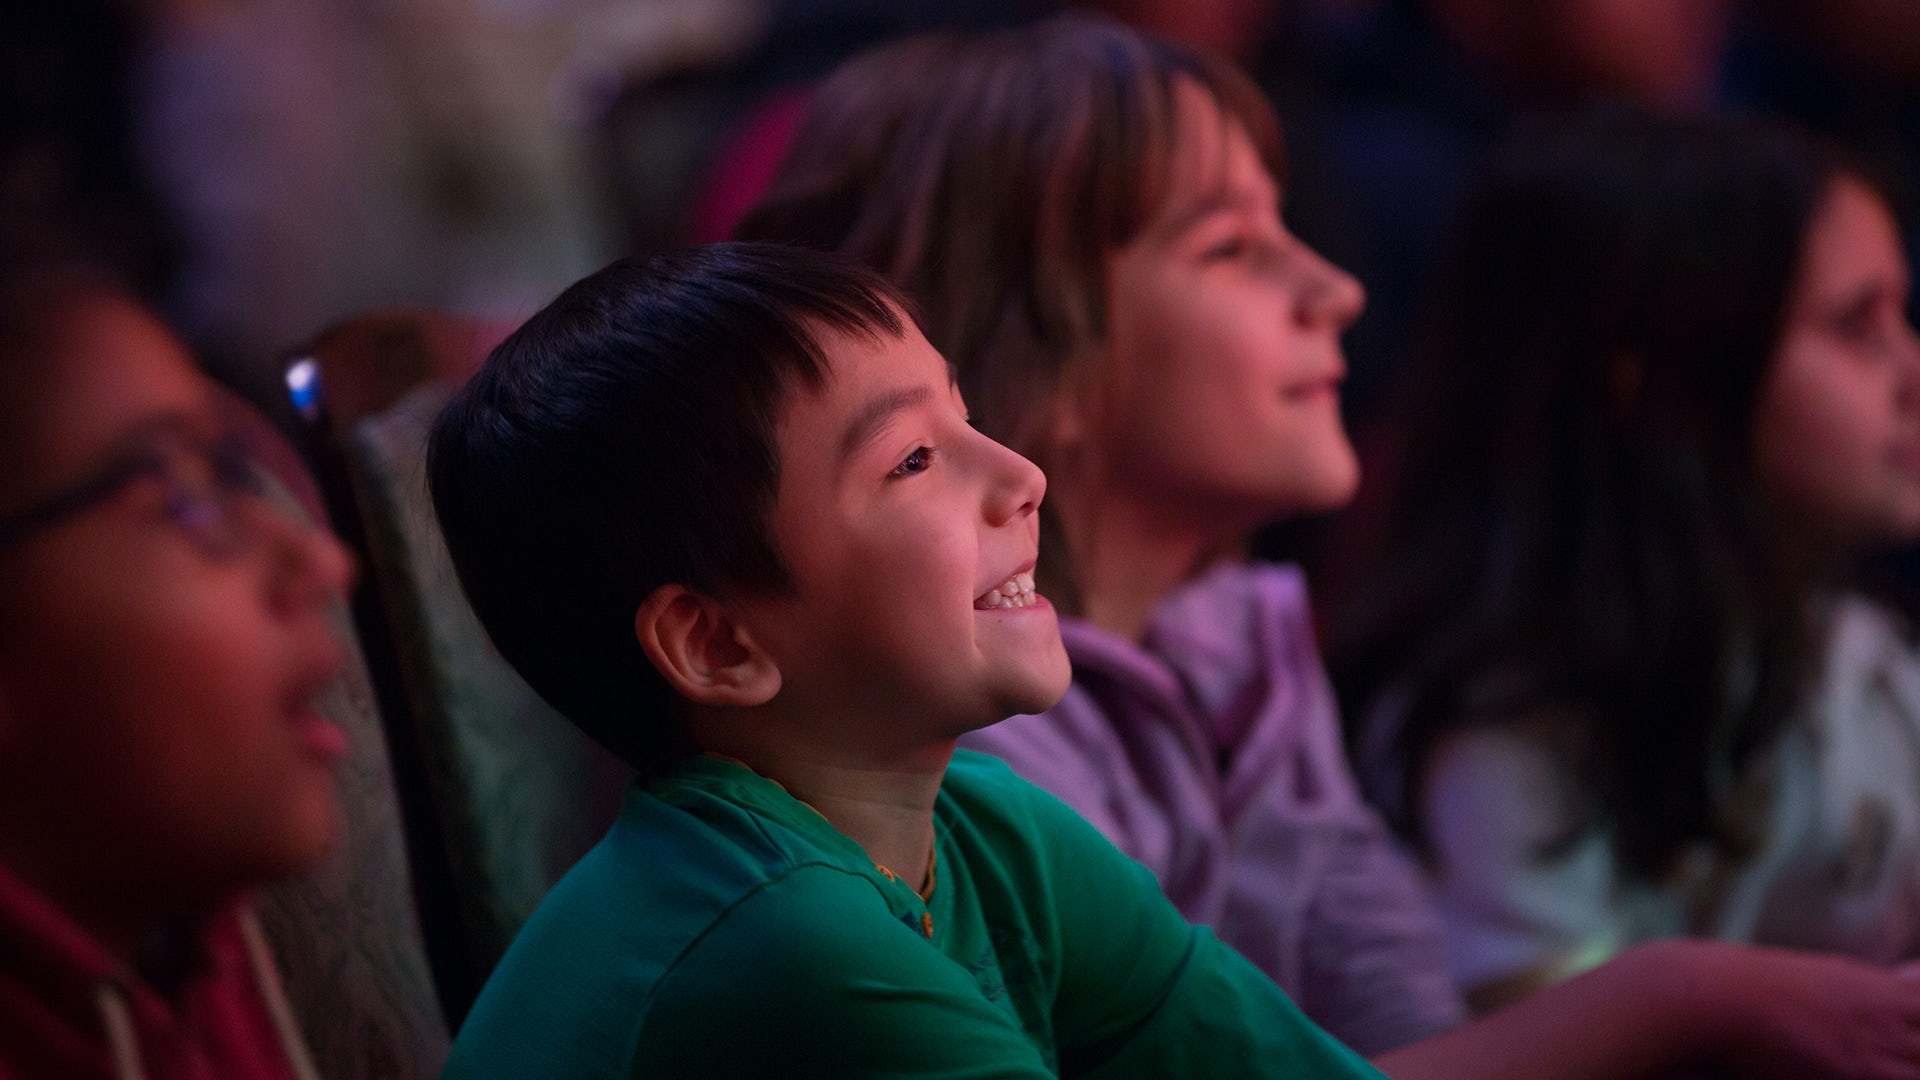 A young smiling boy watches a performance.